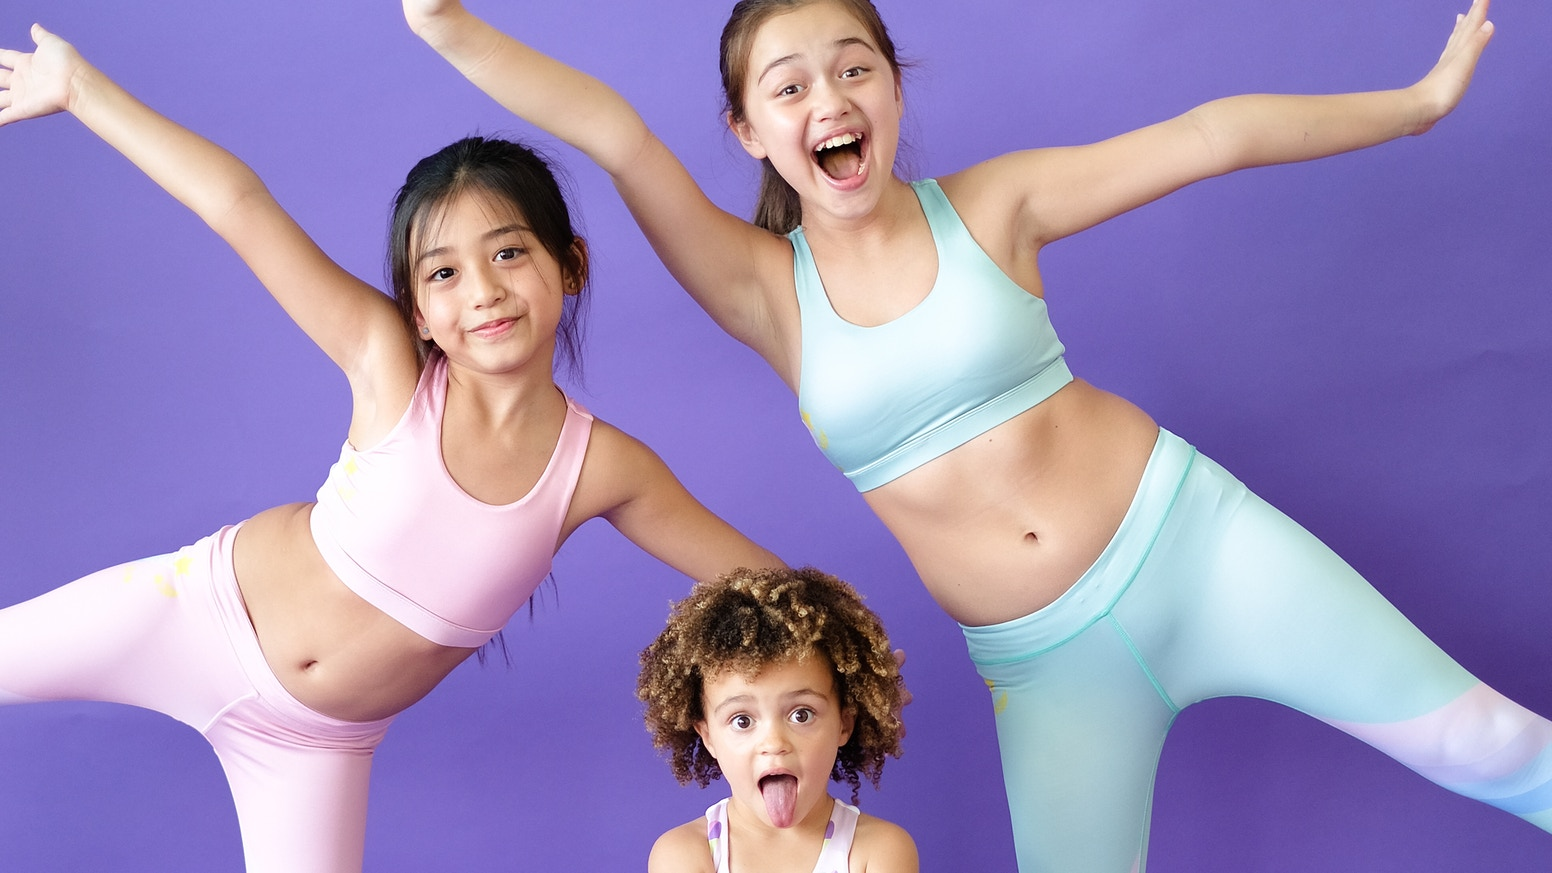 Empowering young girls through prints that teach confidence, bravery and sisterly love